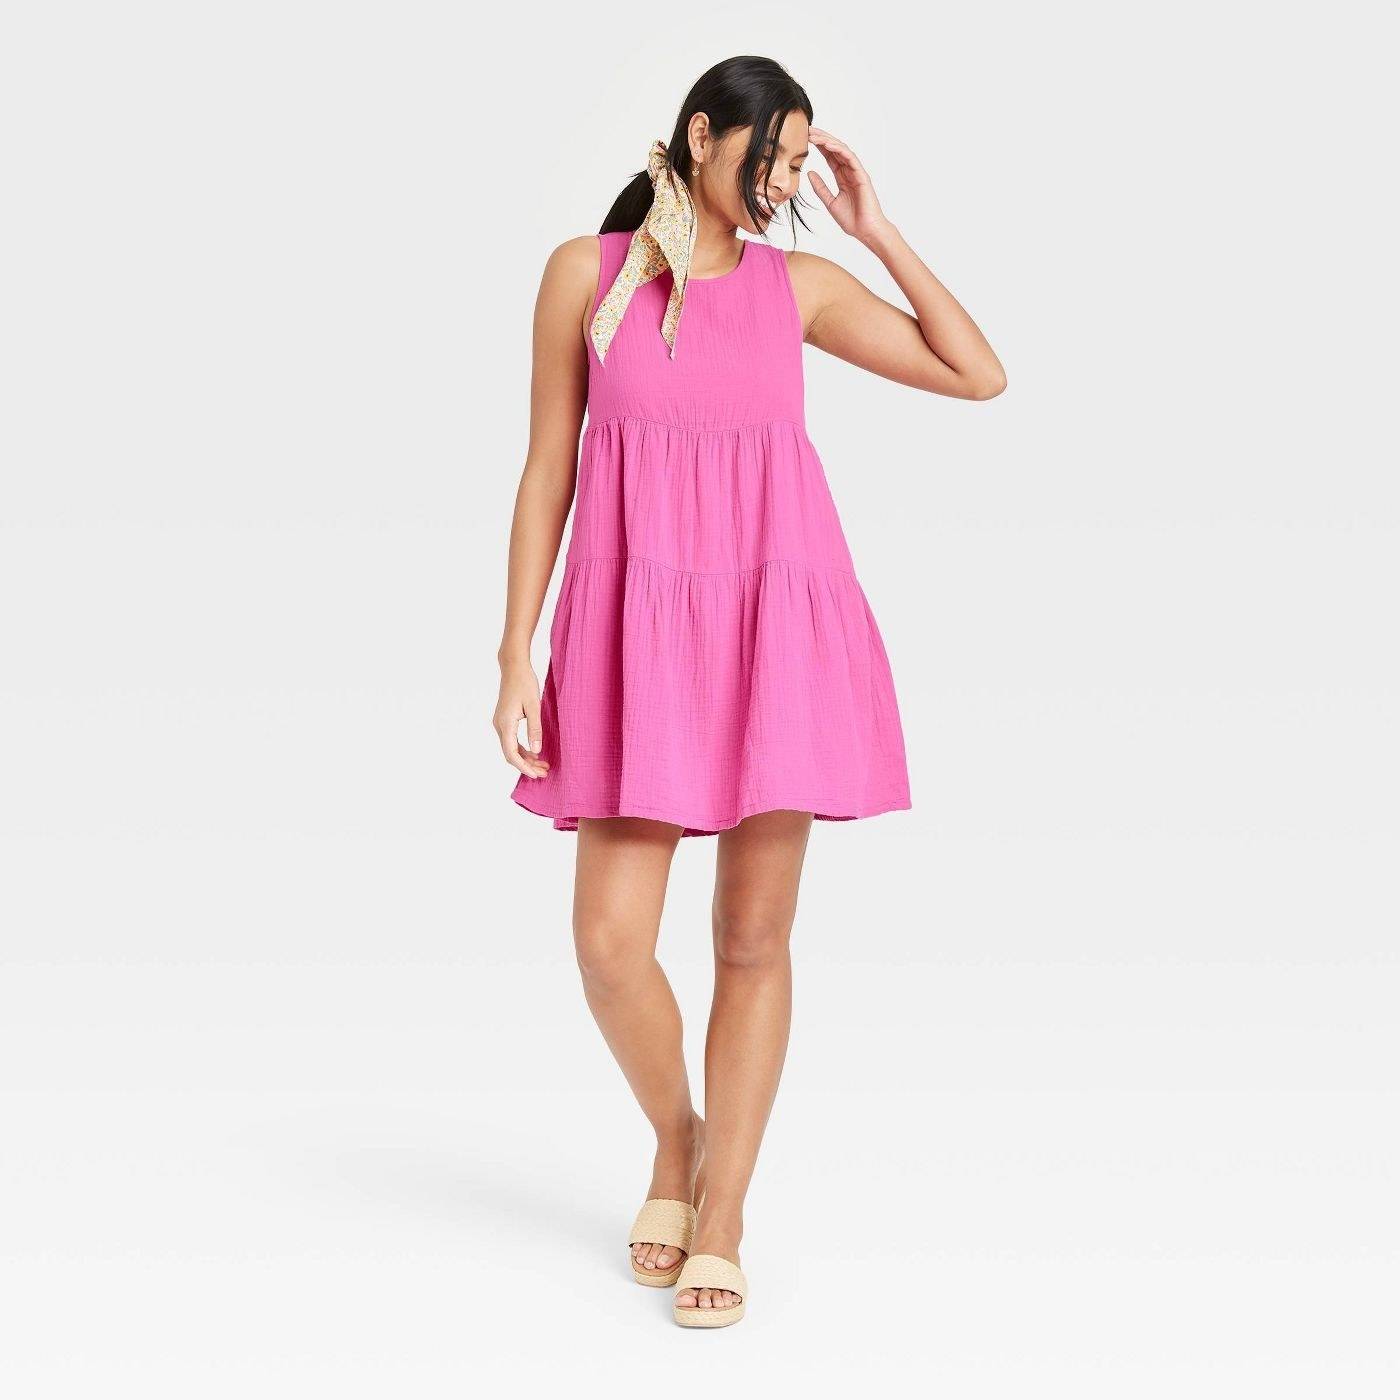 Model wearing pink dress with gauze textured tiers